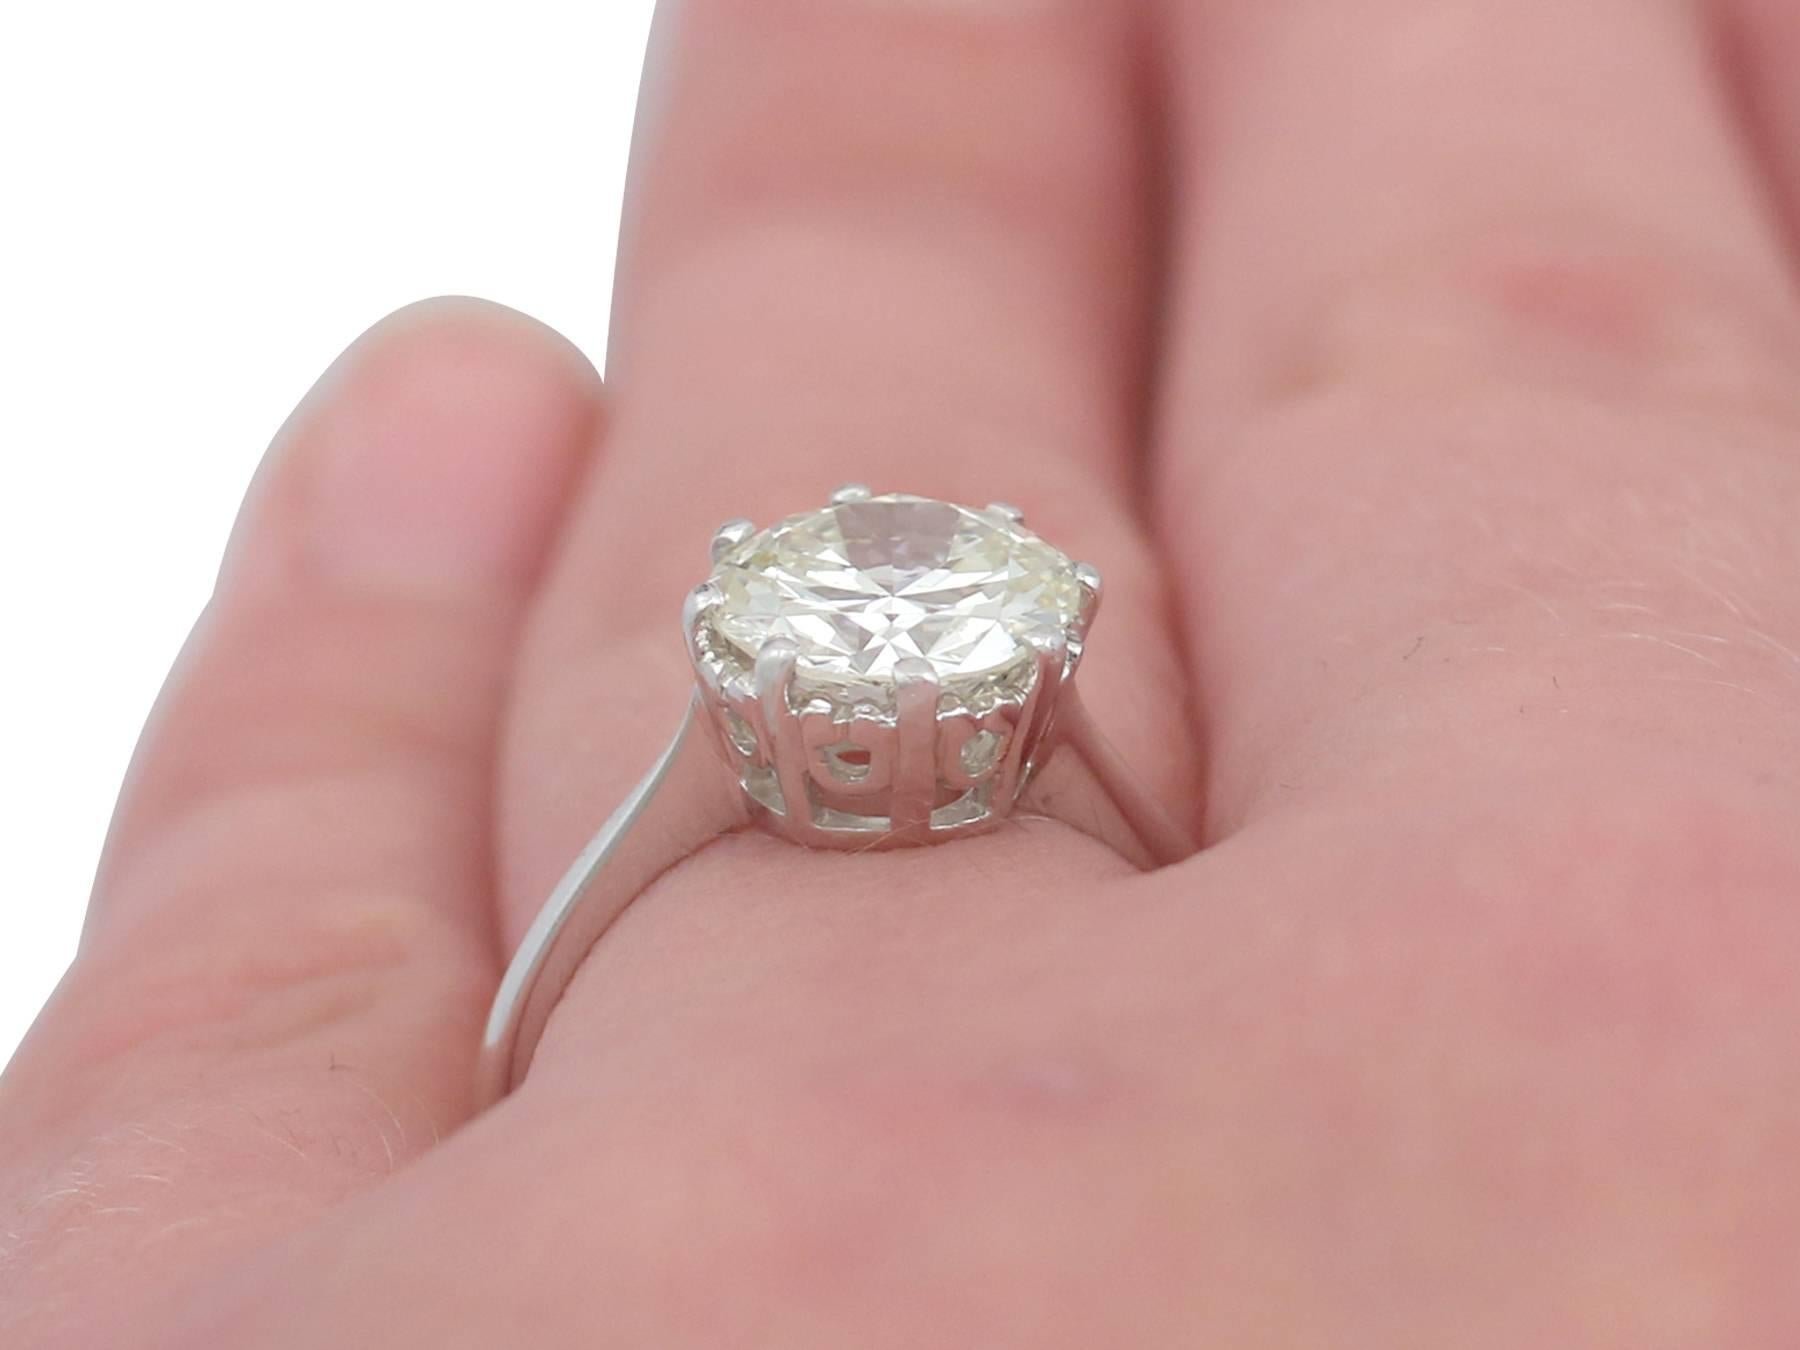 1940s 2.01 Carat Diamond and Platinum Solitaire Ring For Sale at 1stdibs